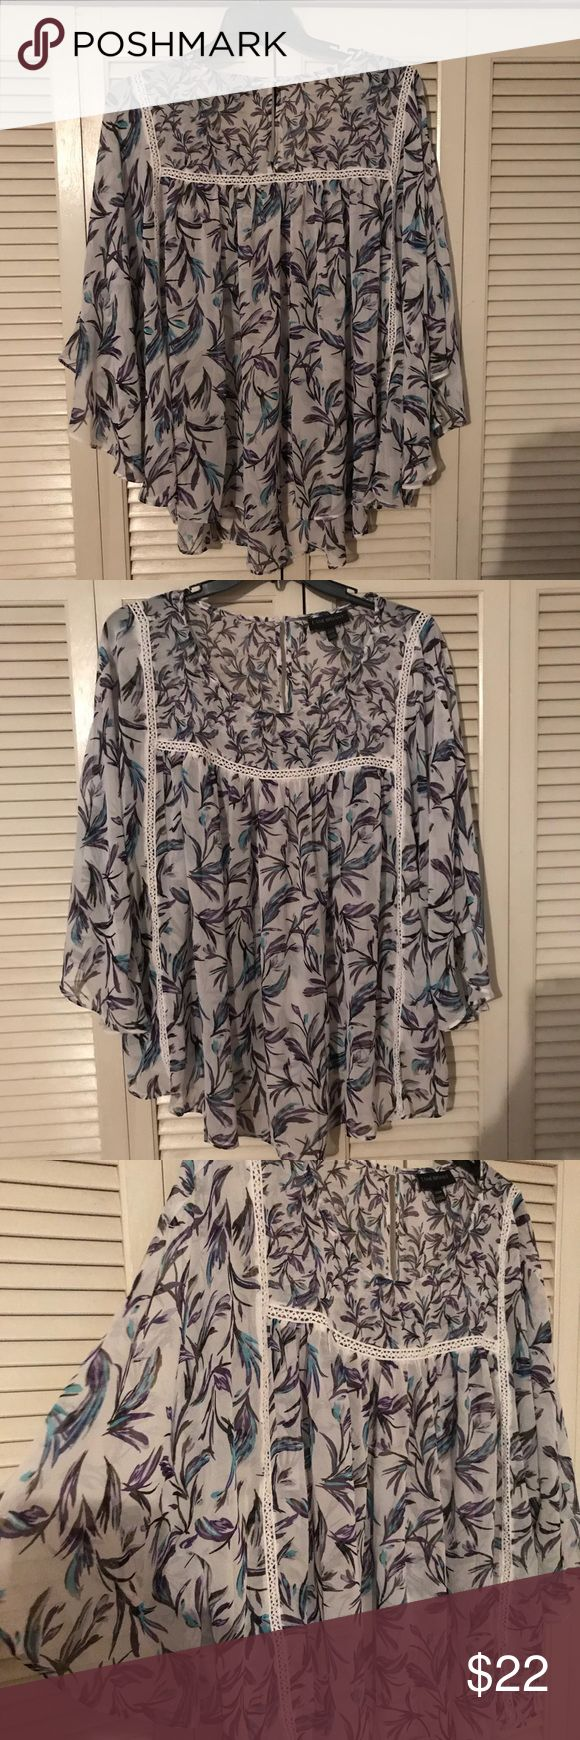 Lane Bryant Blouse 22/24 SO FLATTERING in my opinion. Lightweight. Pull on with Batwing Kimono like sleeves. Incredibly flowy with swing movement. Abstract designs in purple, teal, and blue on white background. Crochet inset details. Fits very much like a Torrid blouse. Size 22/24 but can easily fit 26/28 or 3x 4x. Like New Condition. Lane Bryant Tops Blouses